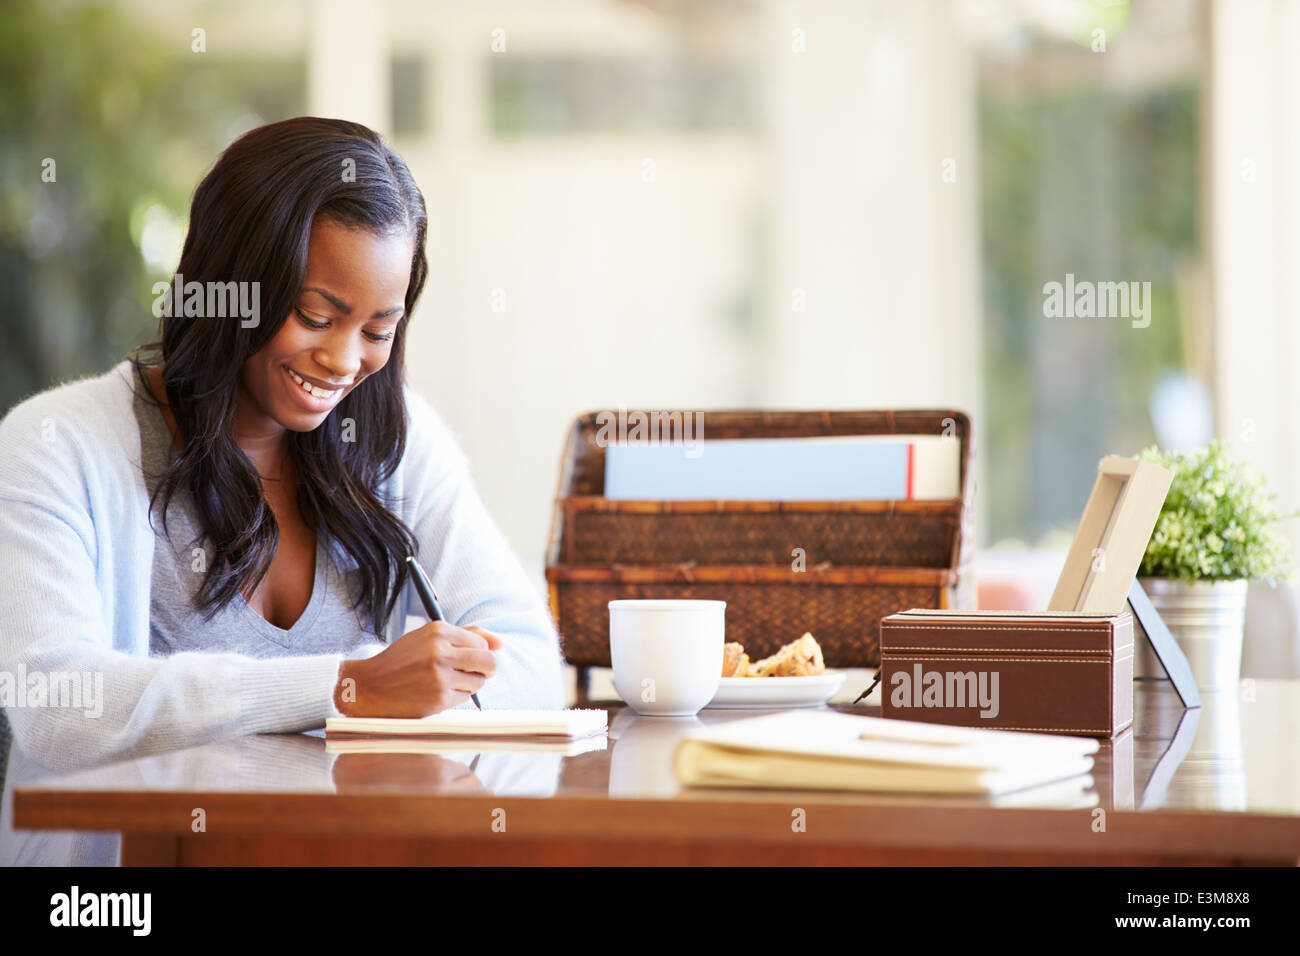 Businesswoman Sitting At Desk Photo Stock